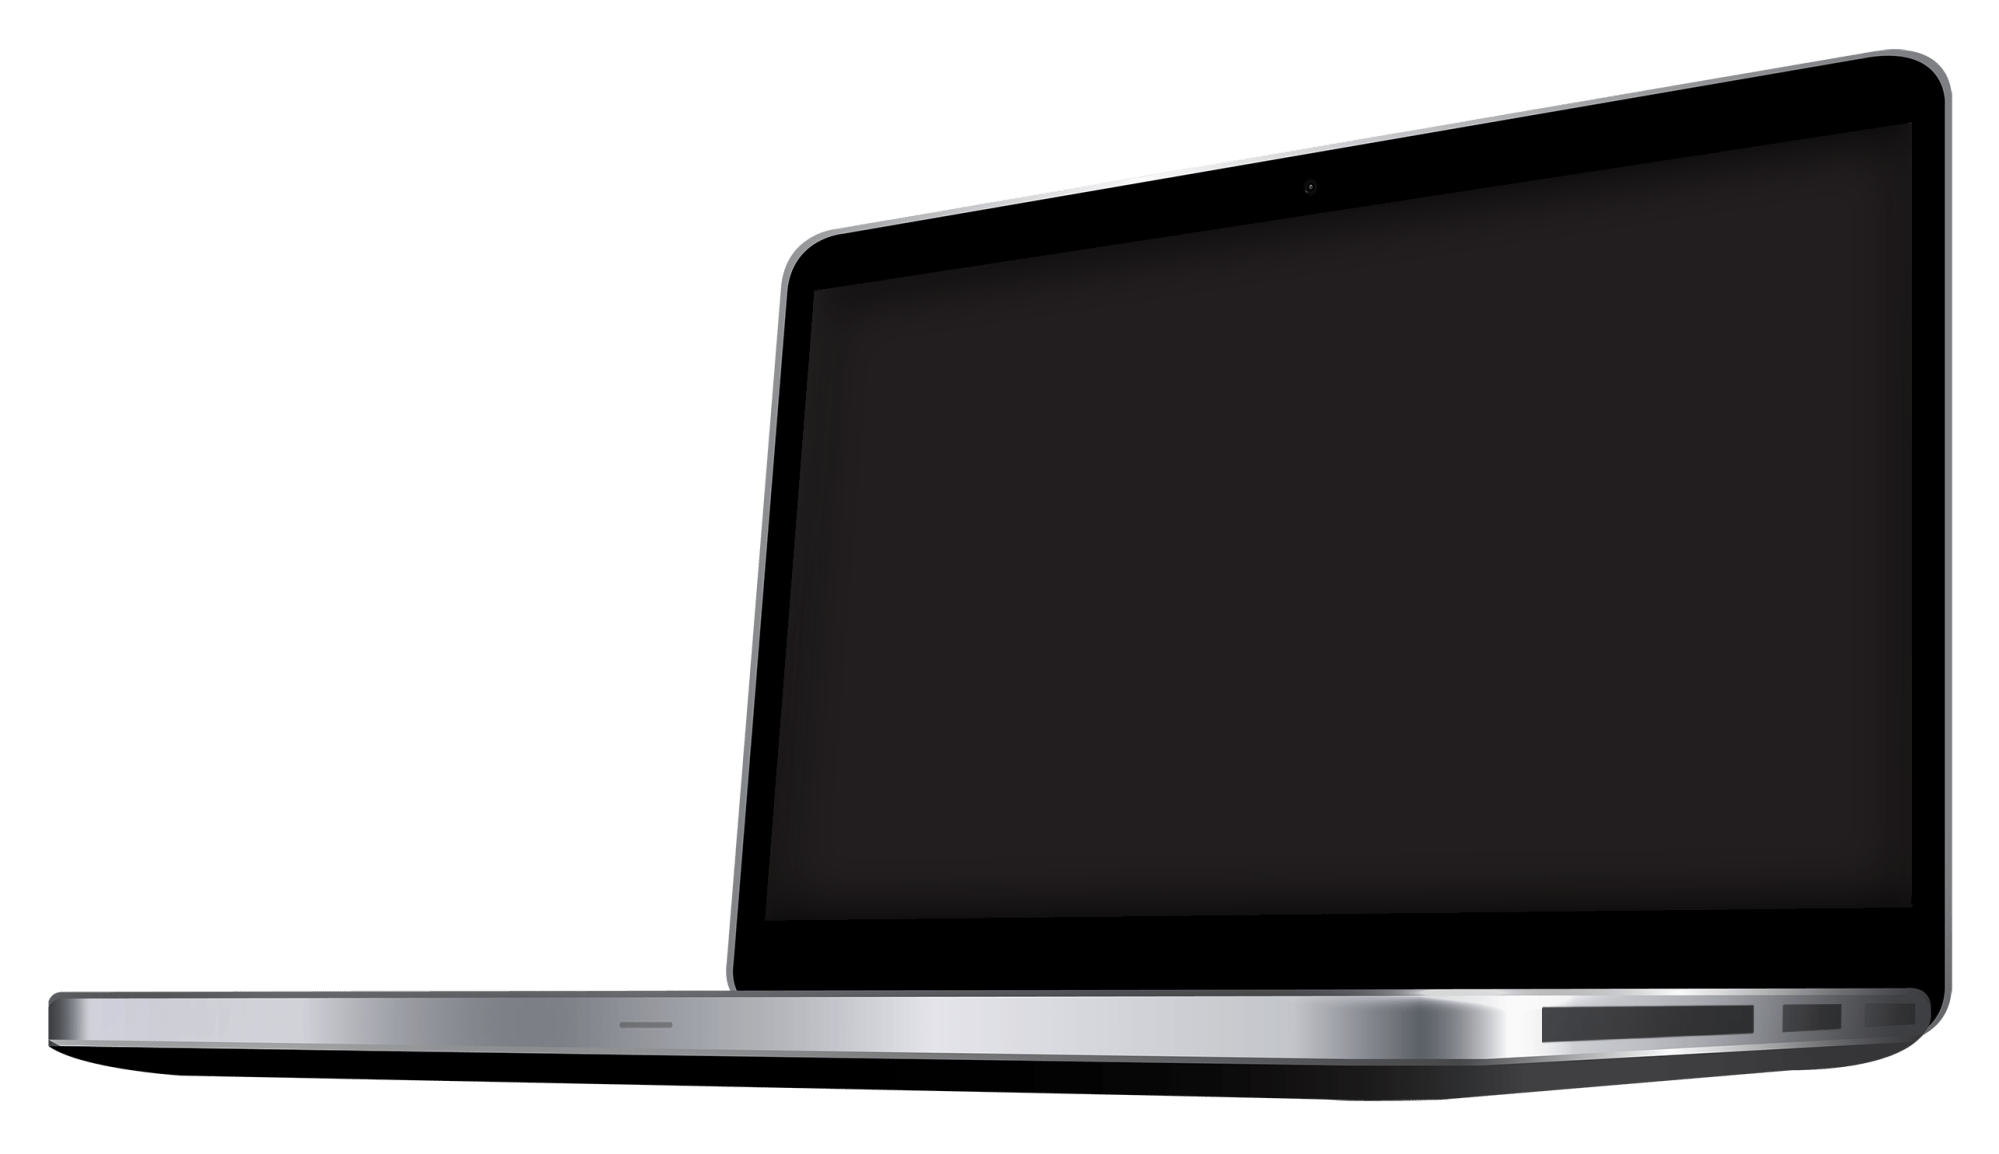 hight resolution of professional laptop png clipart